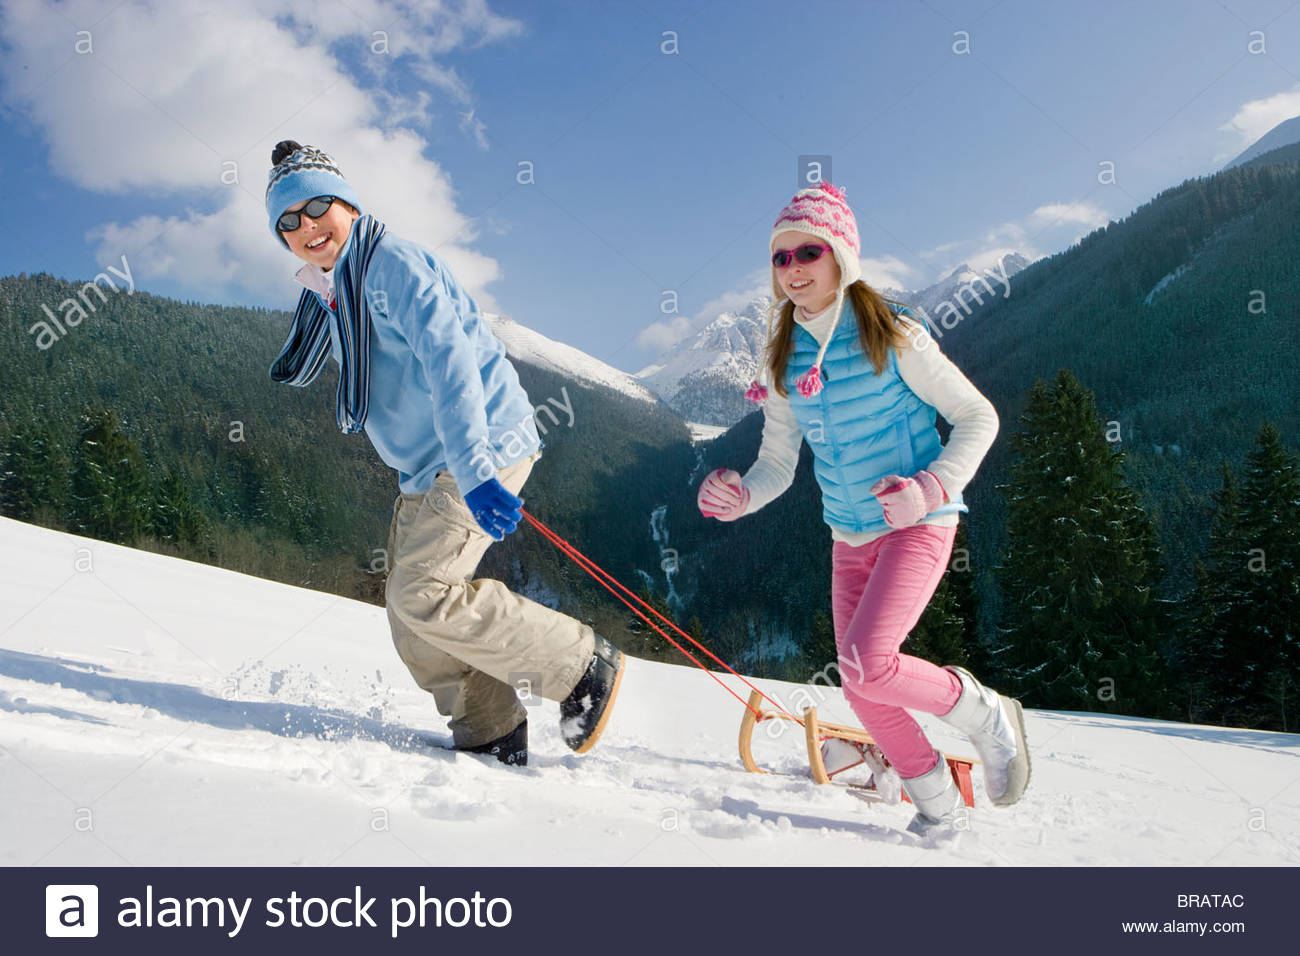 Brother and sister pulling sled uphill - Stock Image